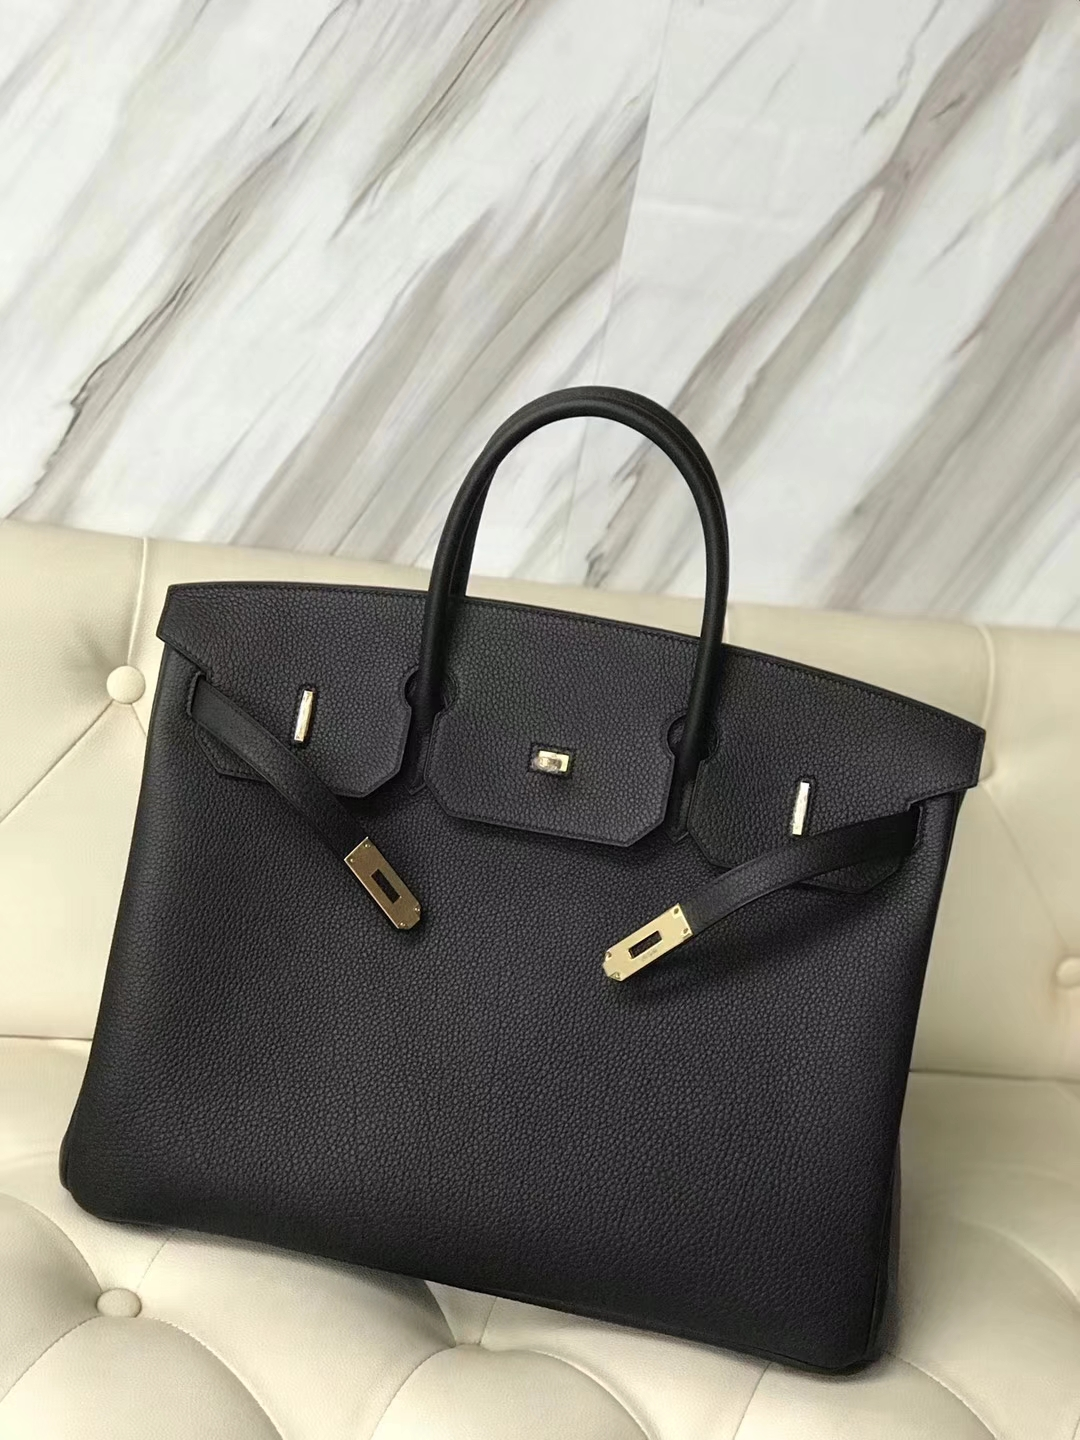 Hermes Birkin 40 Black Togo Palladium Hardware BAG